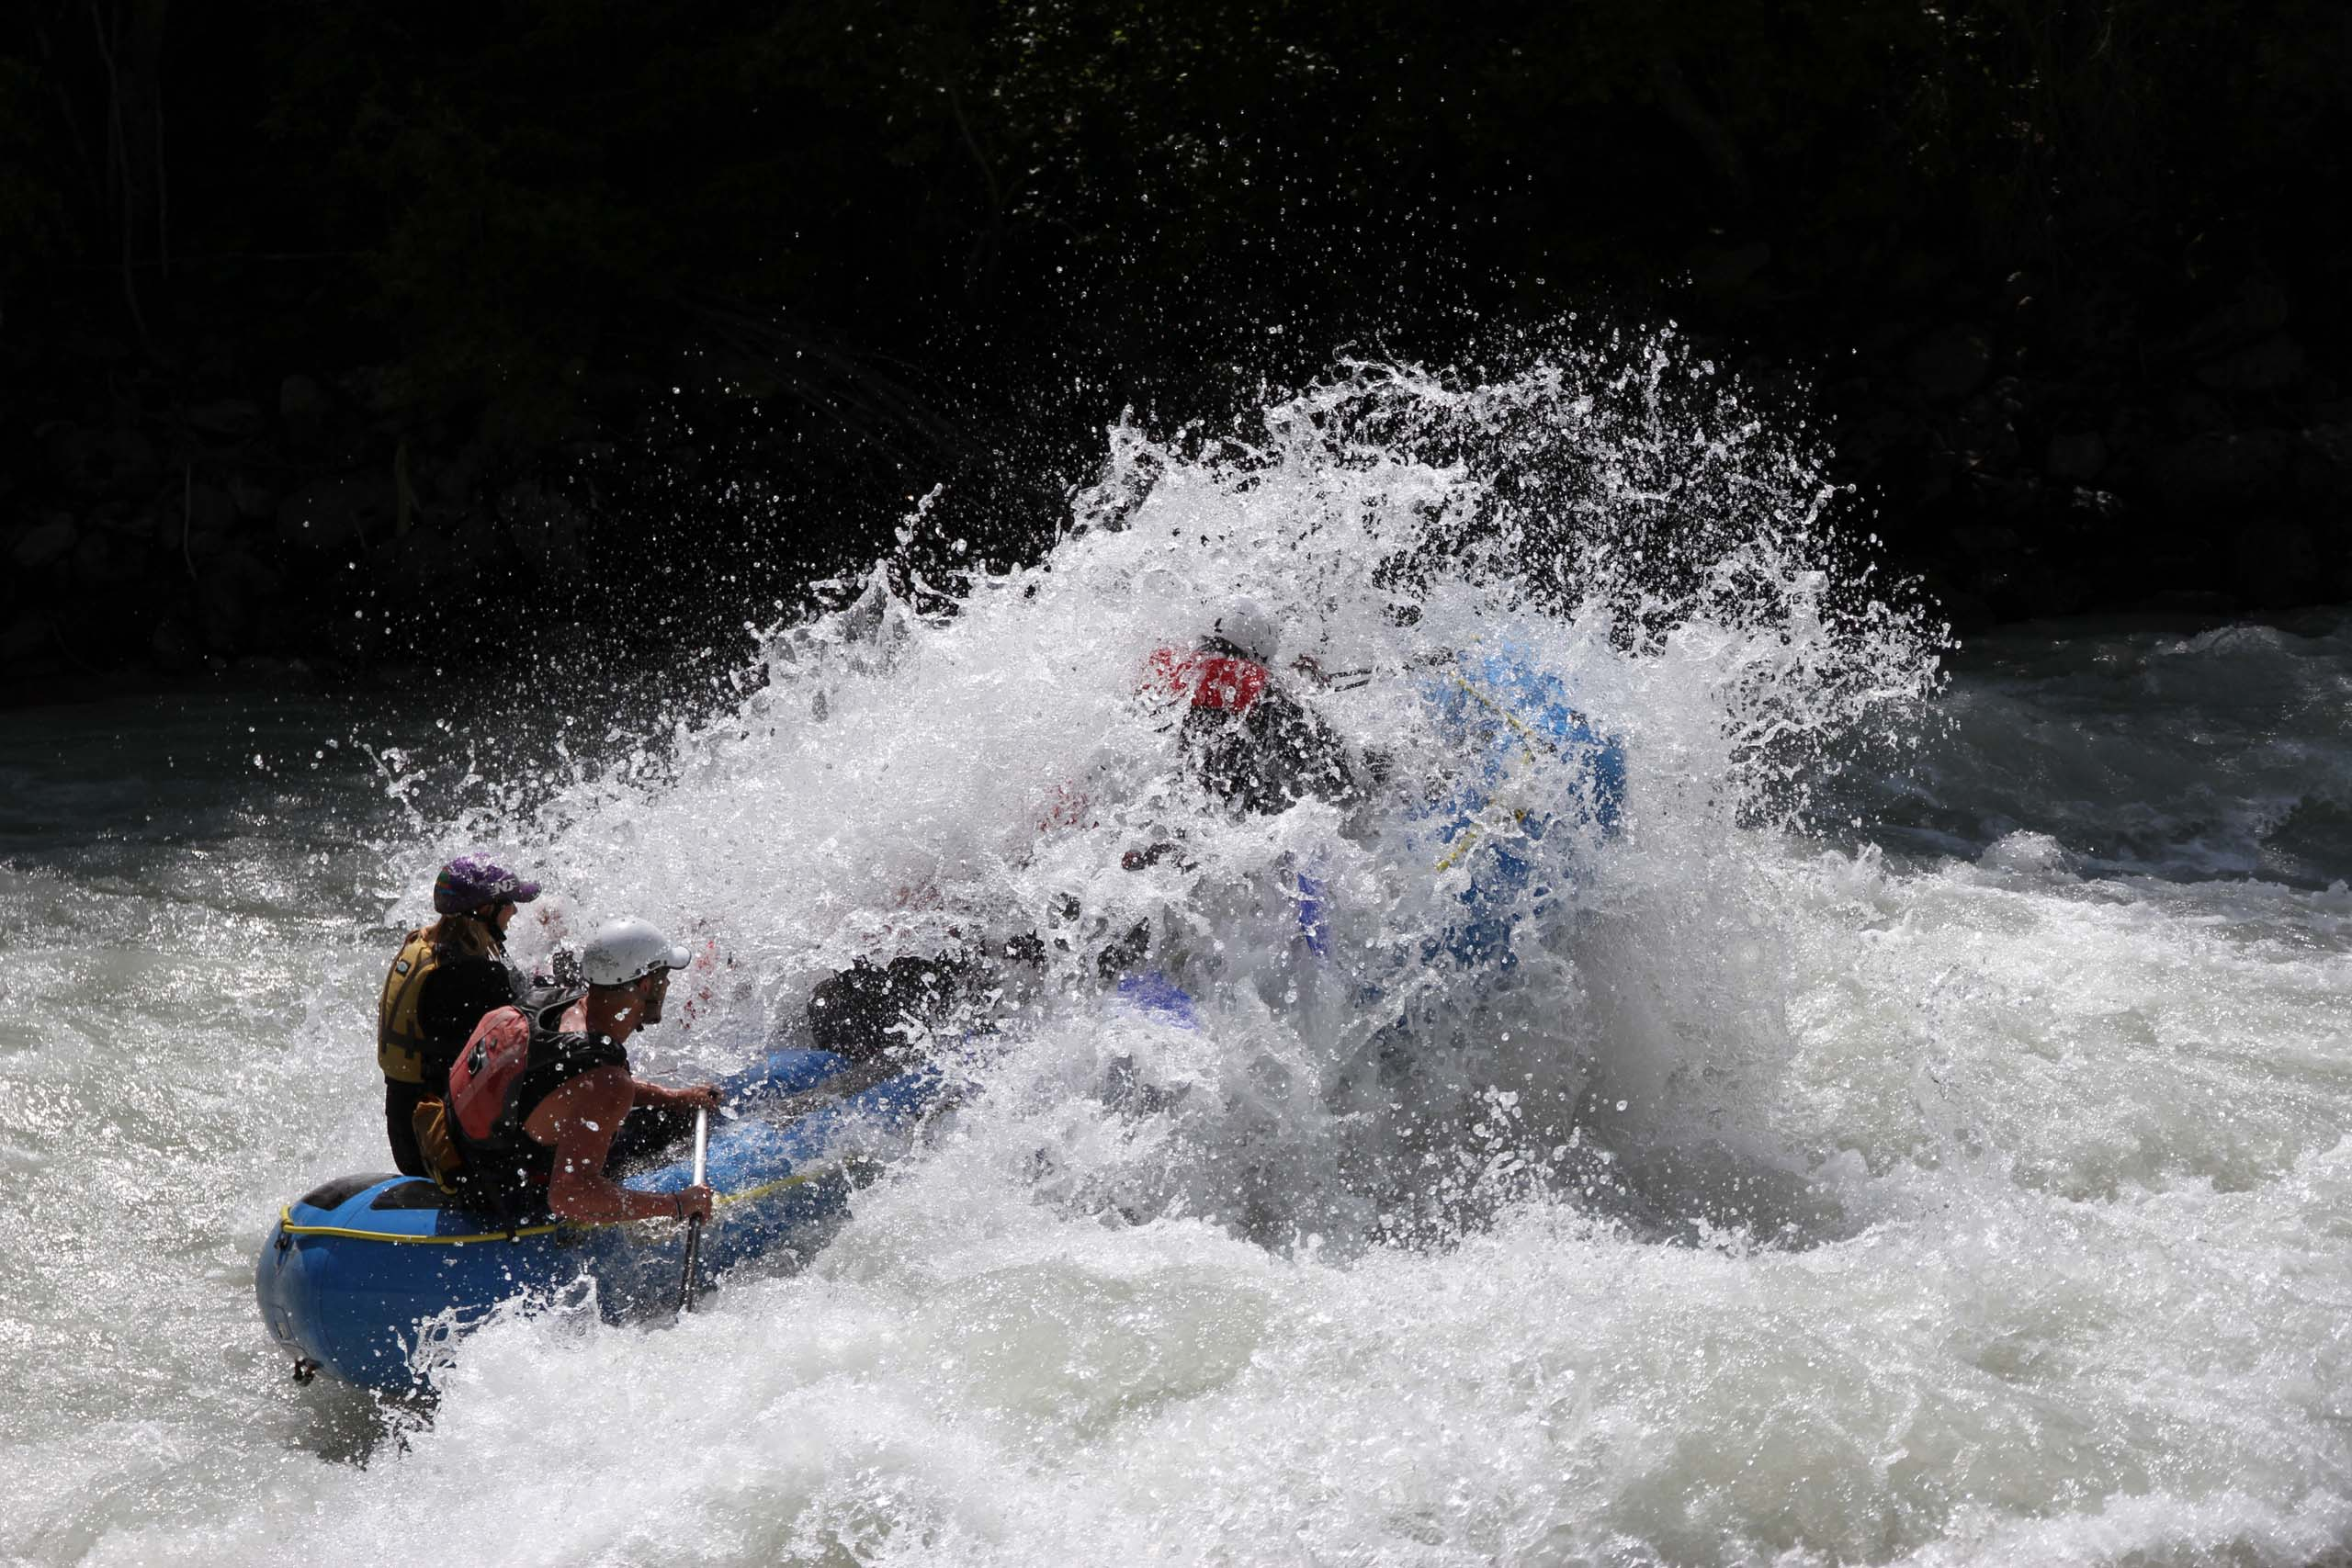 Rafting Landecker 069-1.jpg